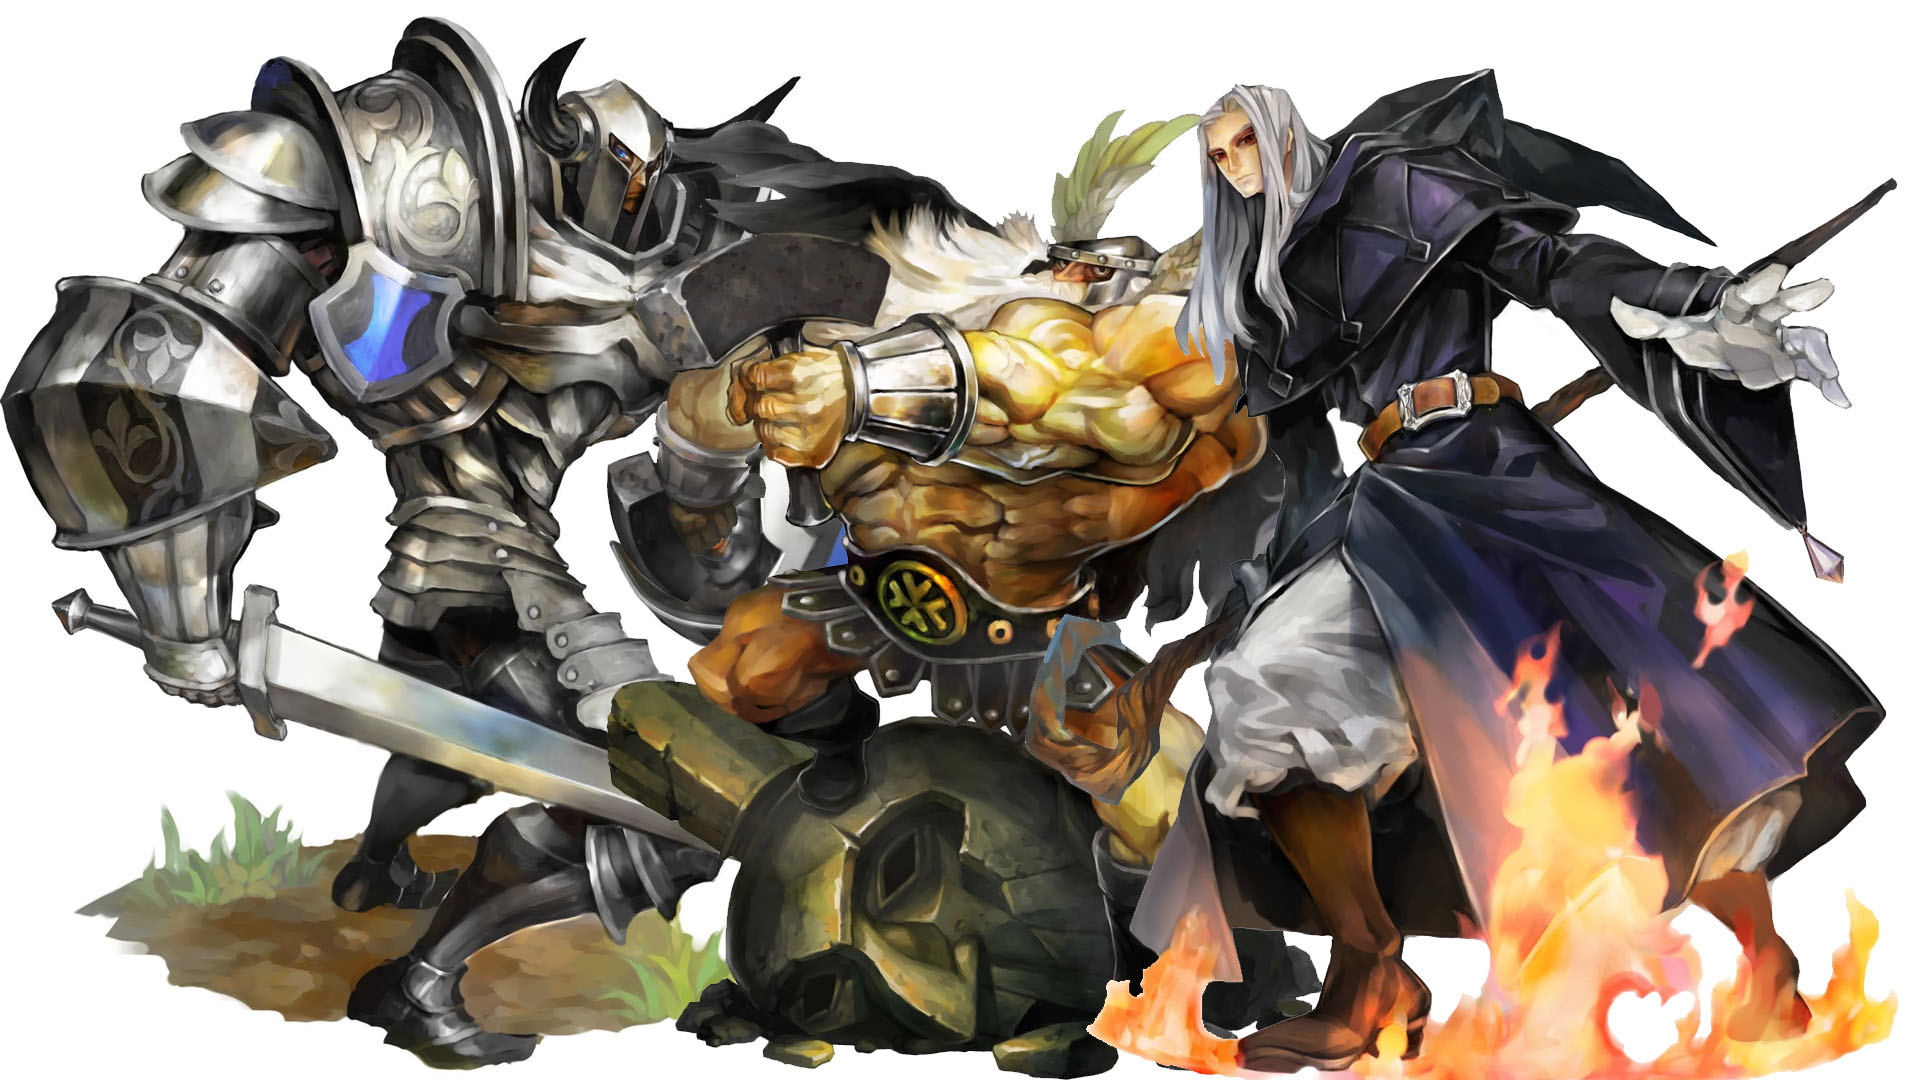 Comparison Of Dragon S Crown Concept Art From 1998 And Its